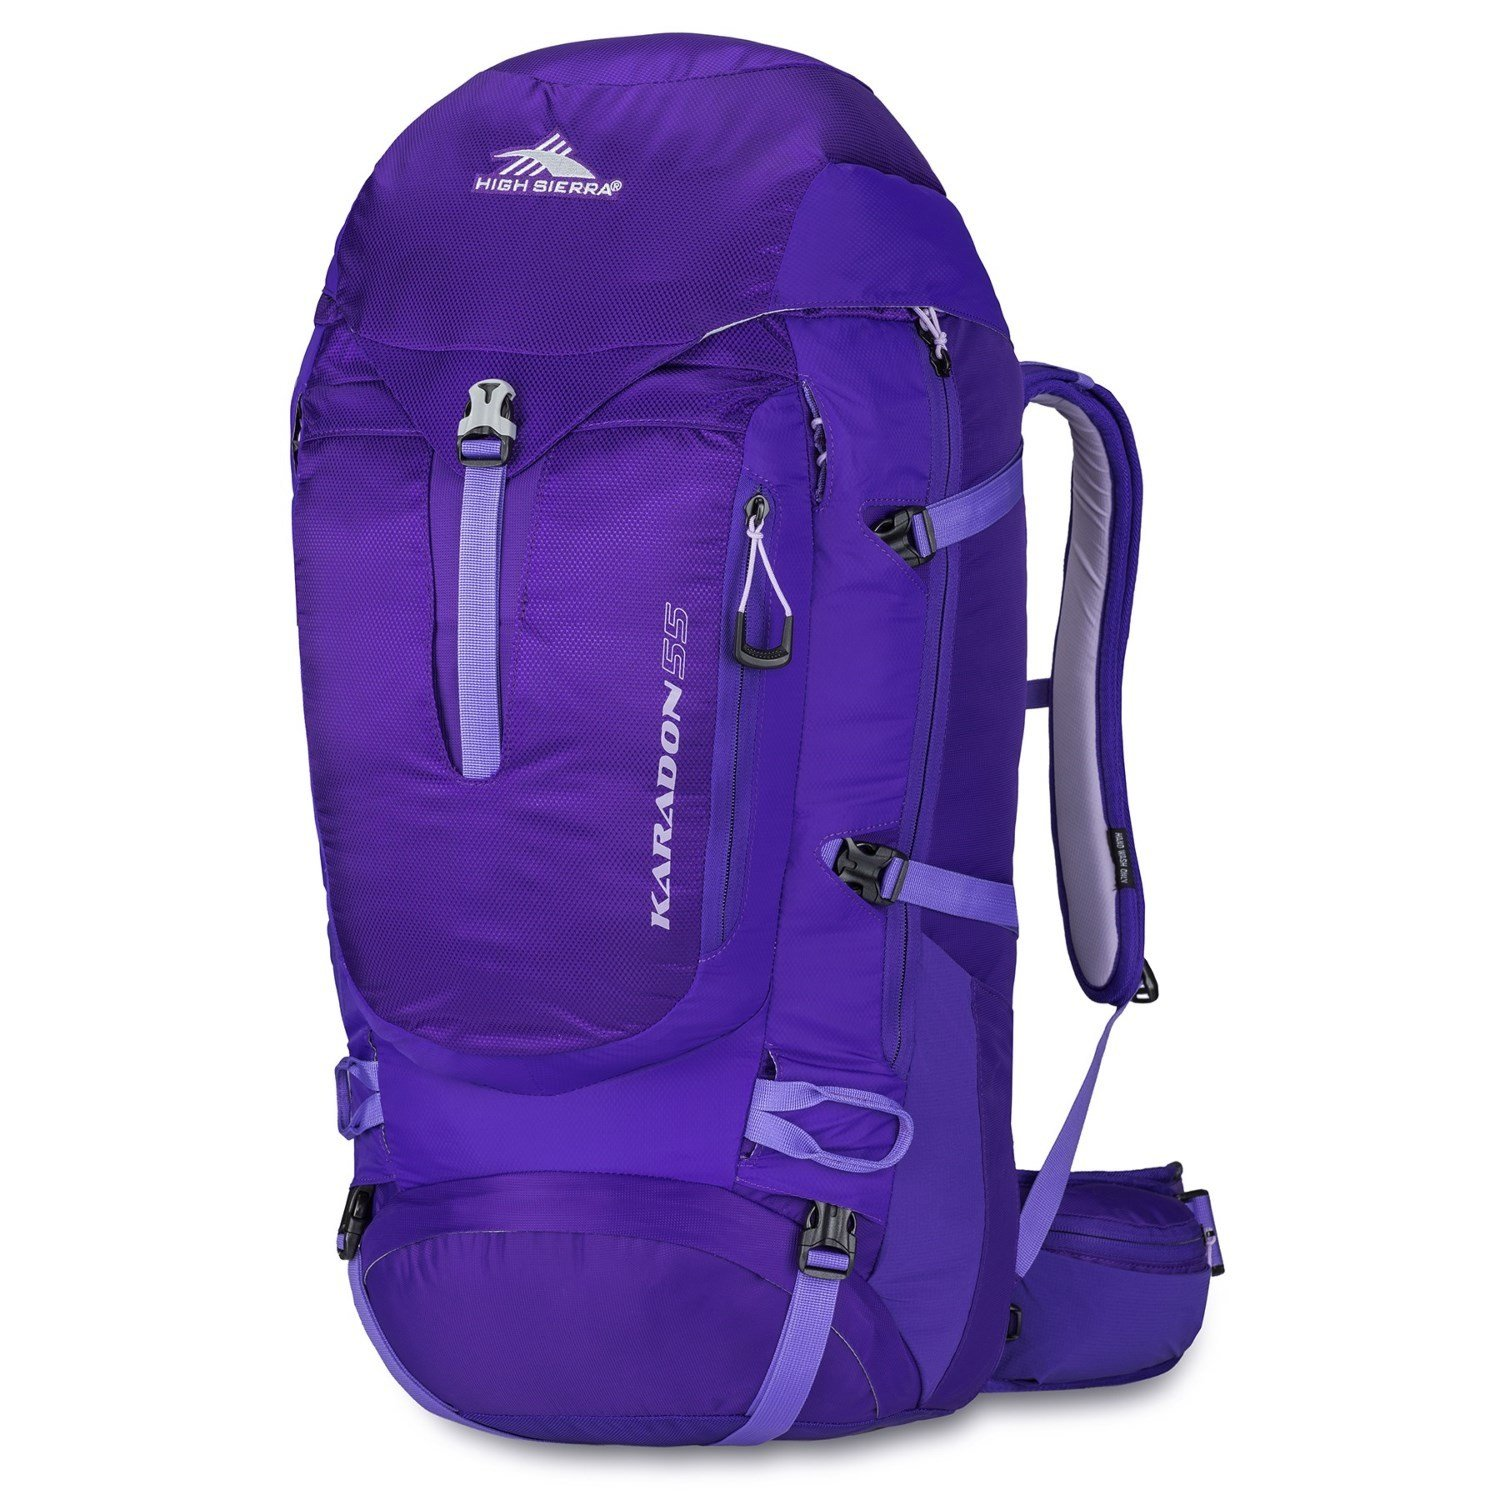 High Sierra Karadon 55L Women's Backpack M/L Torso